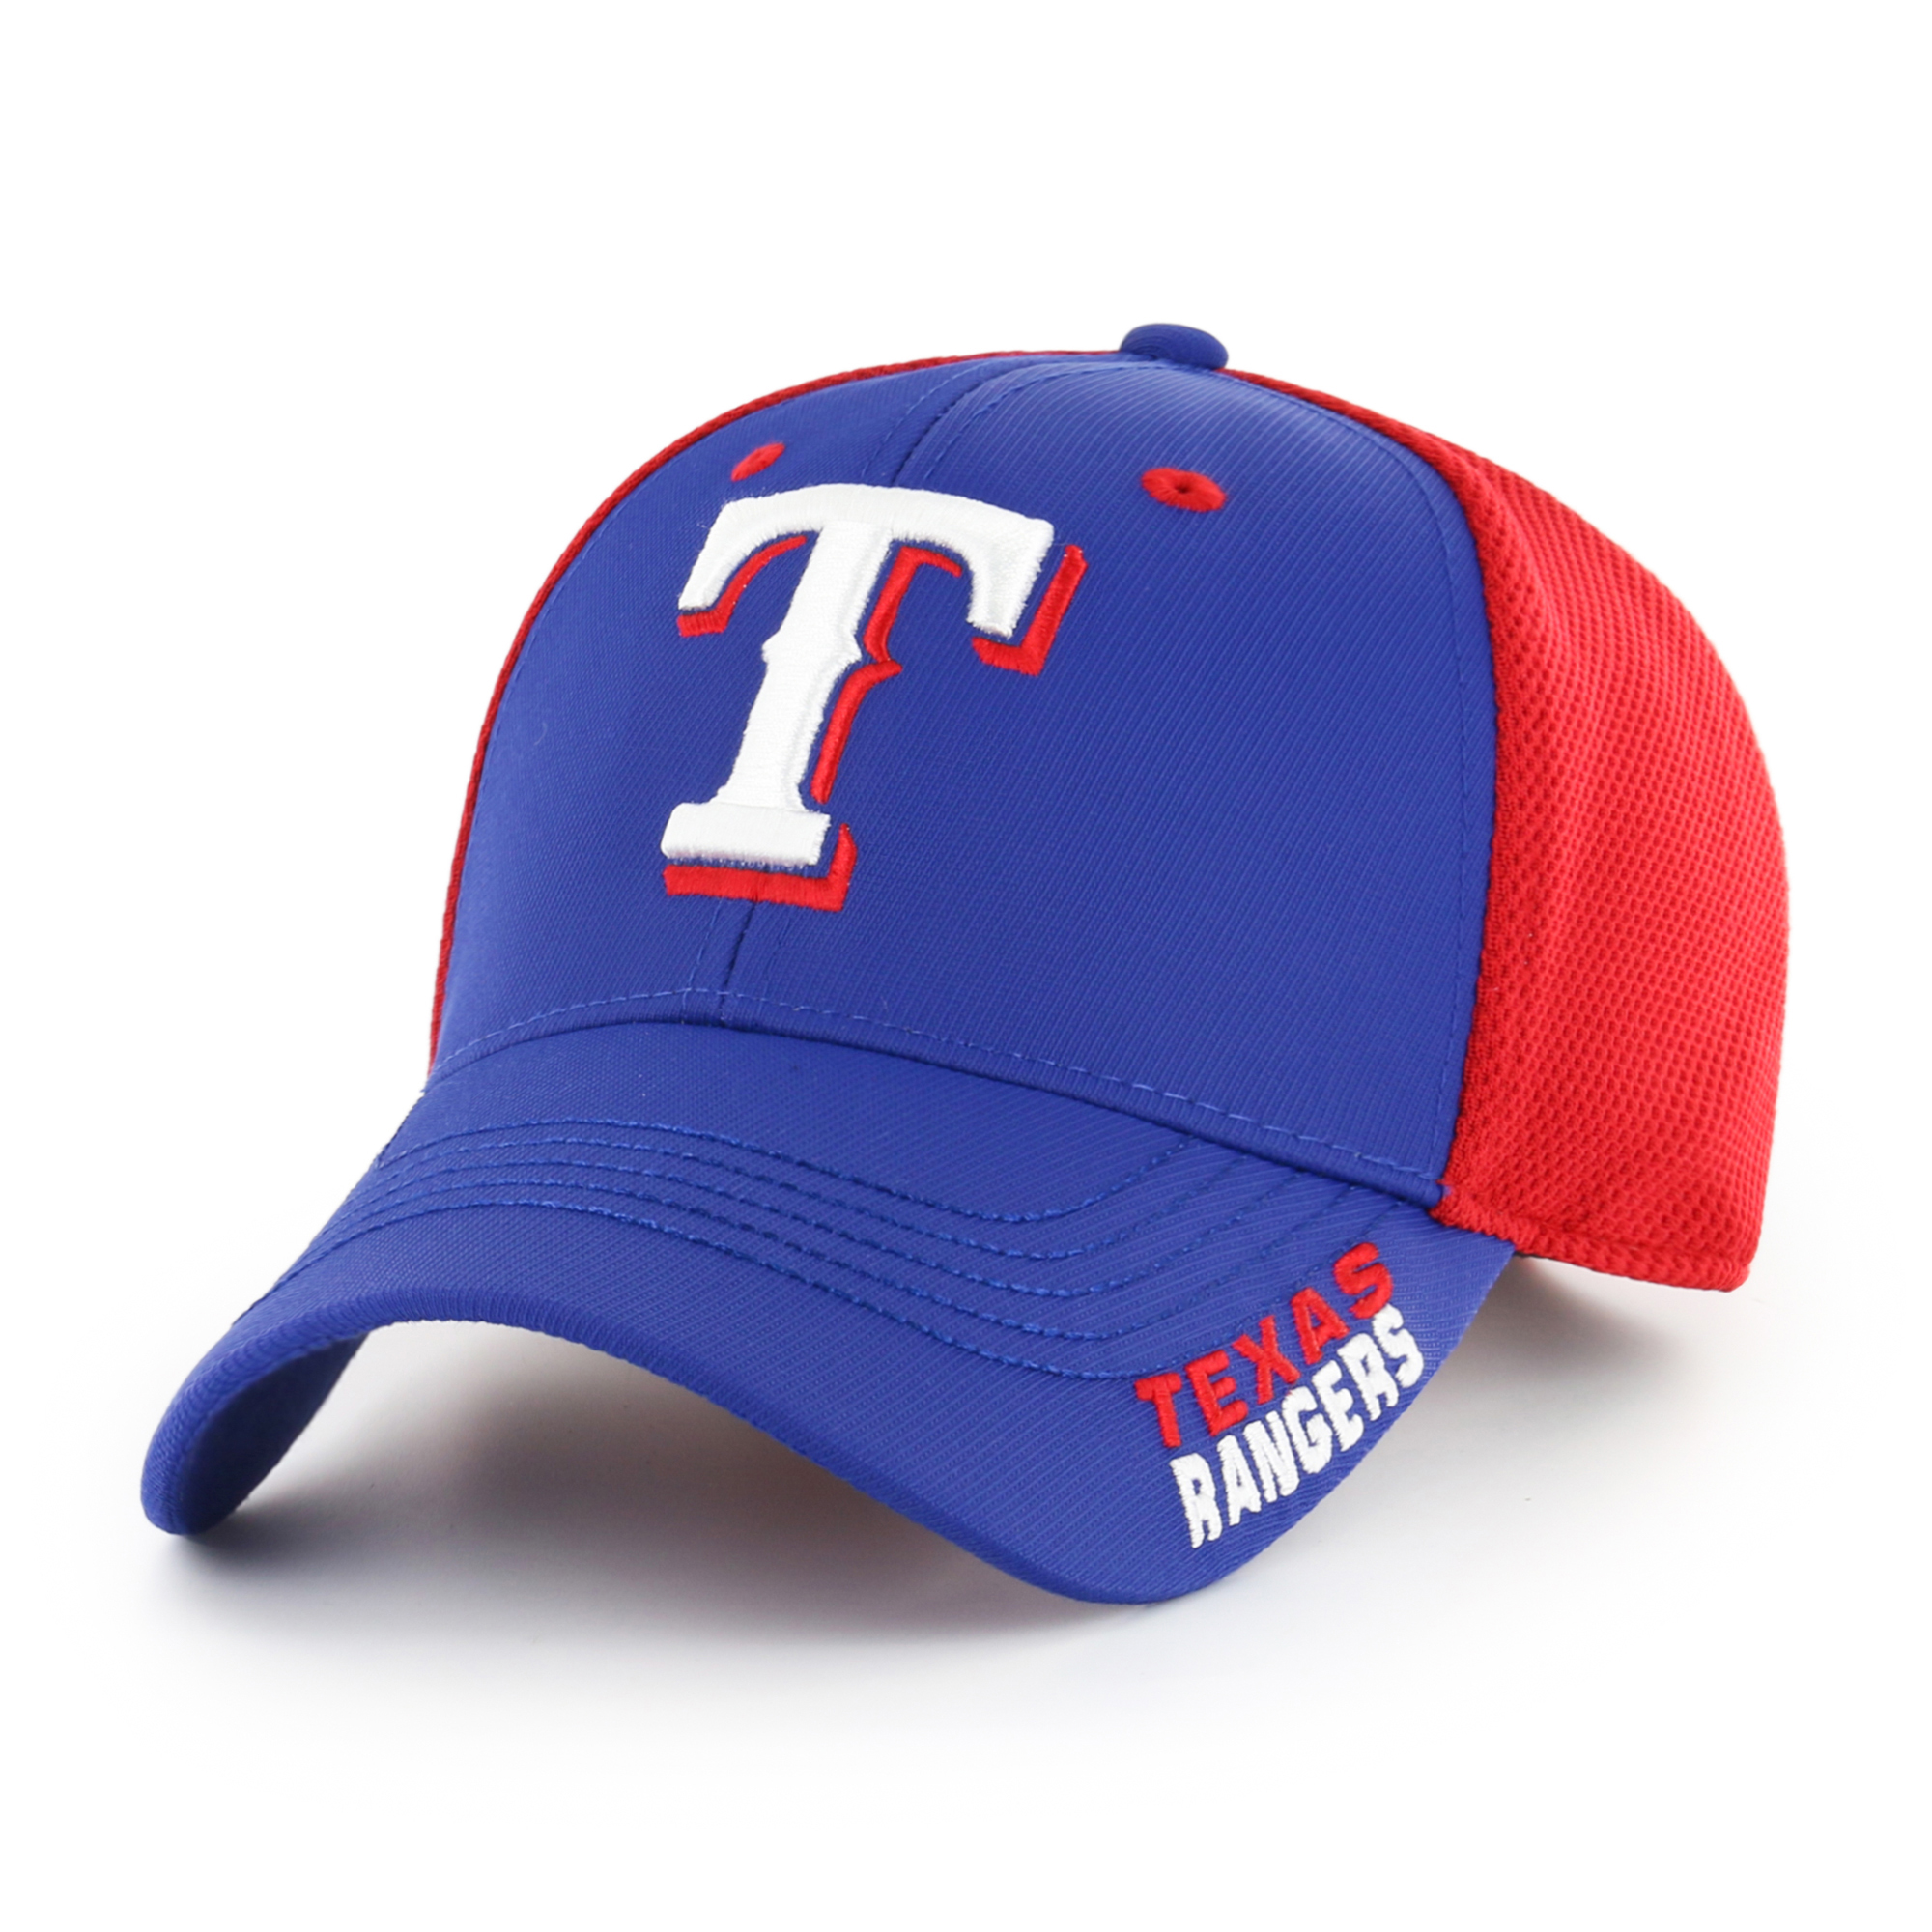 MLB Texas Rangers Completion Adjustable Cap/Hat by Fan Favorite